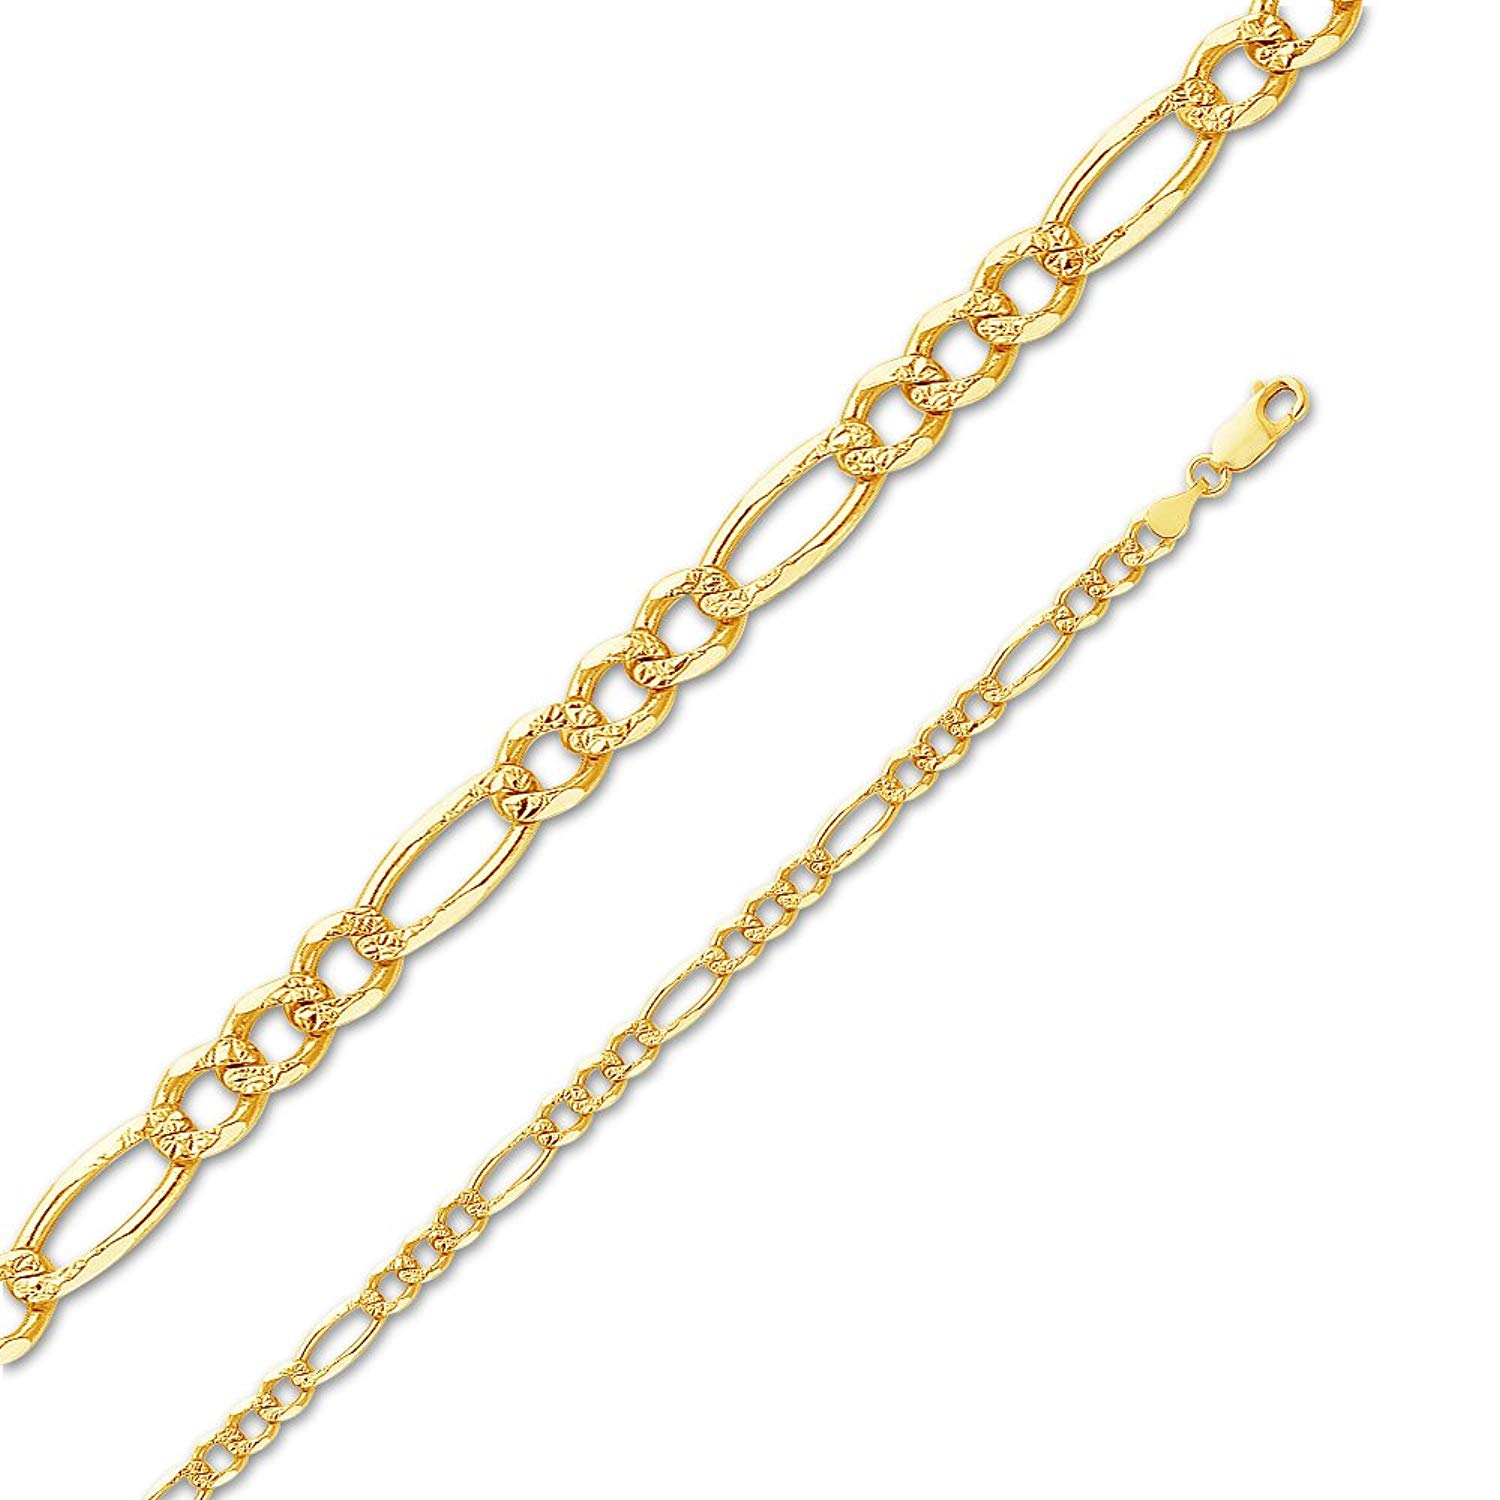 14k Yellow Gold Solid 4.5mm Figaro 3+1 Yellow Pave Diamond-Cut Chain Necklace